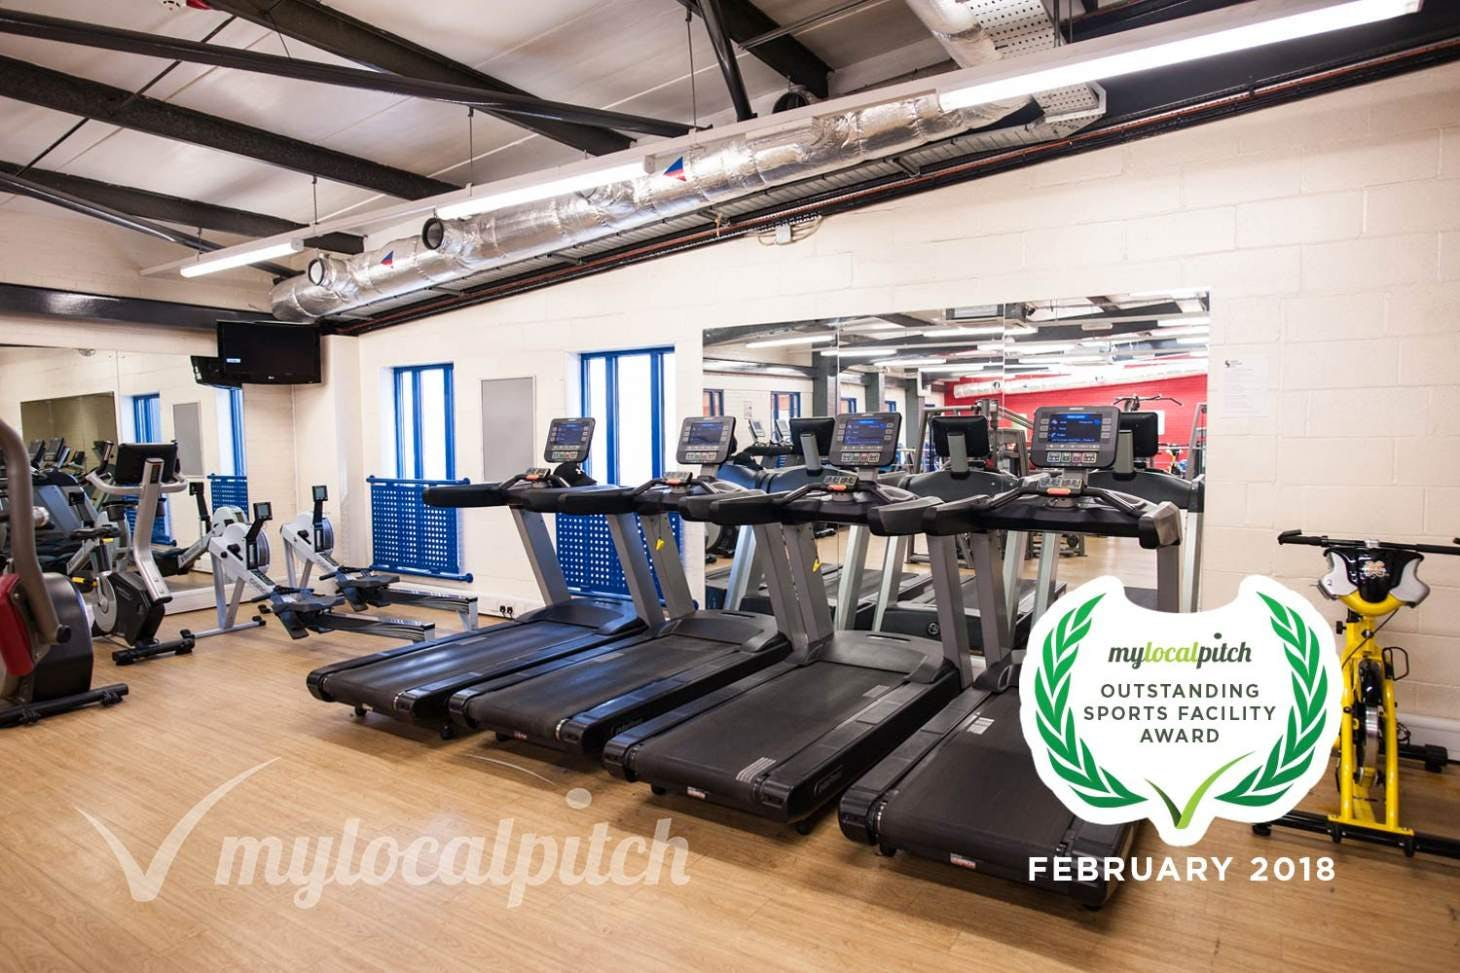 Ordsall Leisure Centre Gym gym